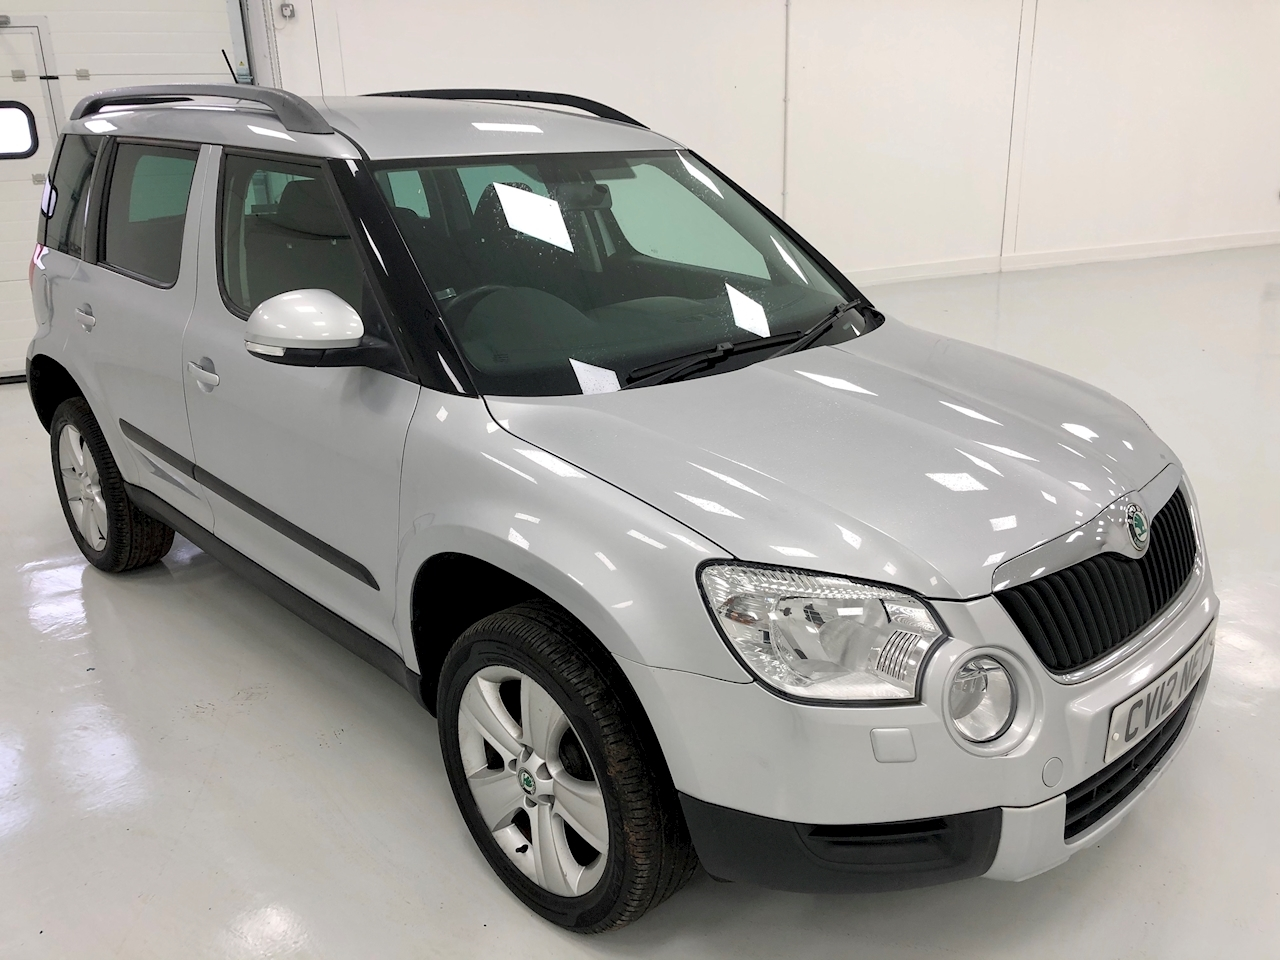 Skoda Yeti Se Plus Tdi 4X4 Hatchback 2.0 Manual Diesel